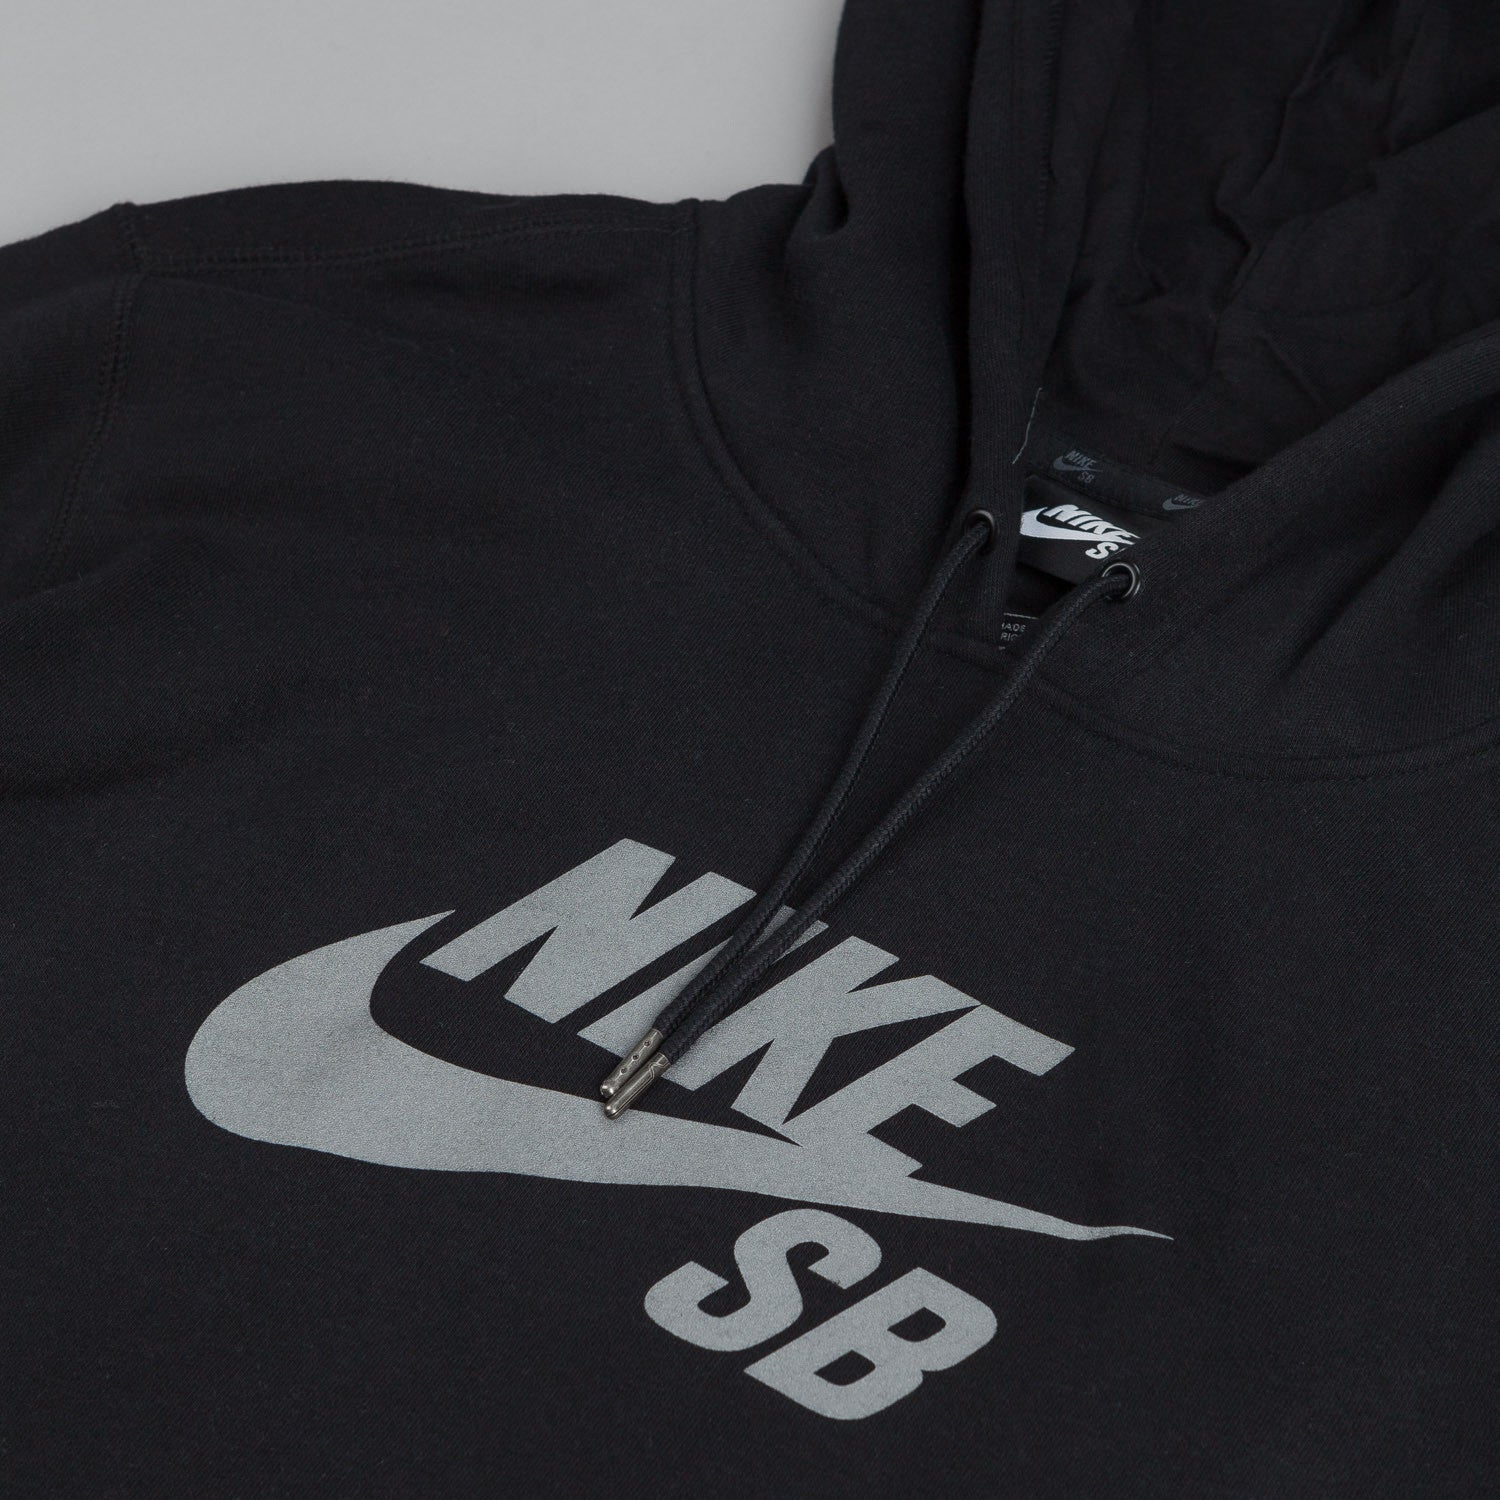 Nike SB Pullover Reflective Icon Hooded Sweatshirt - Black / Reflect Silver